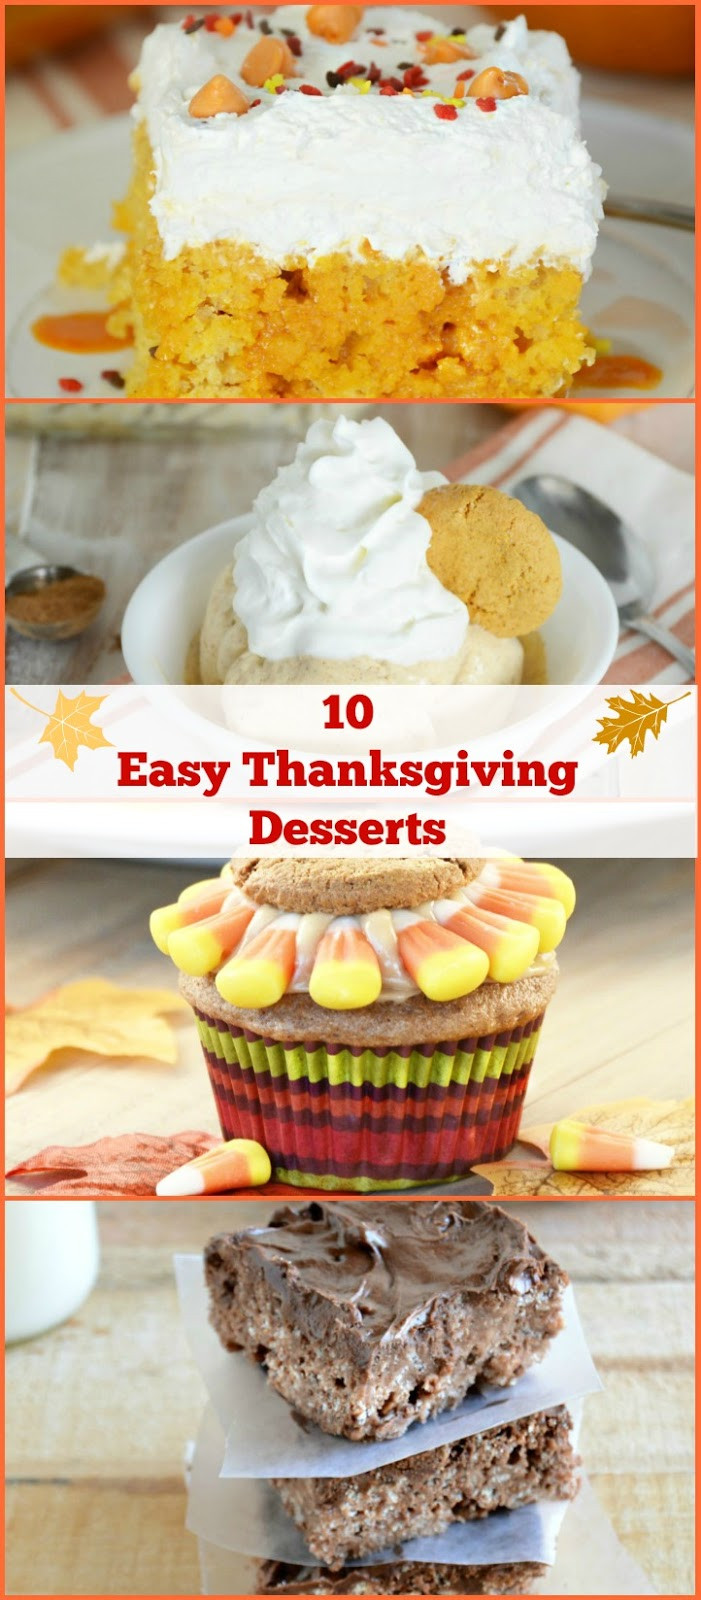 Easy Thanksgiving Dessert Recipes  10 Easy Thanksgiving Dessert Ideas Meatloaf and Melodrama